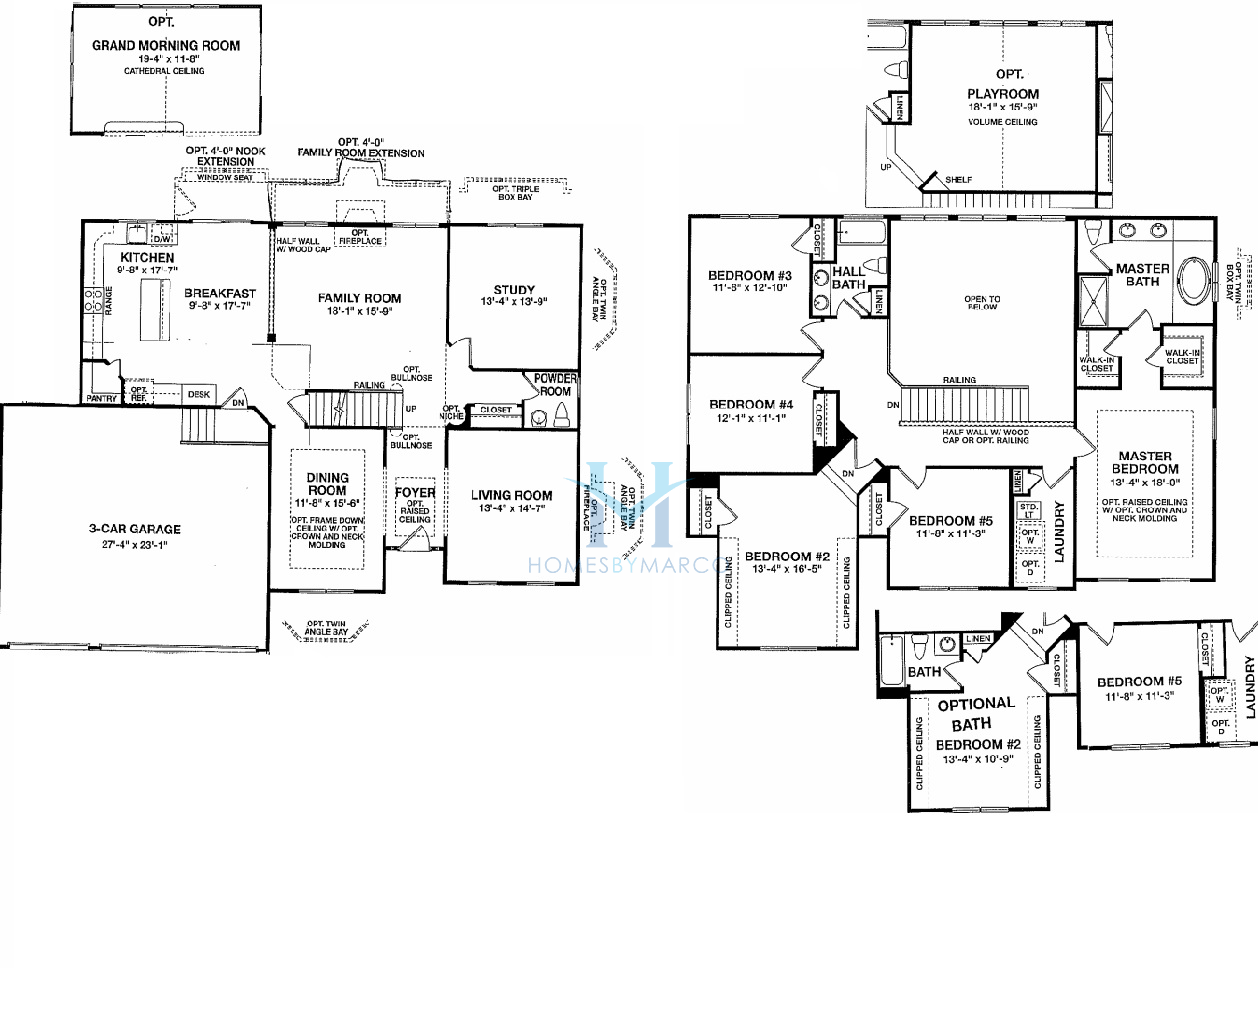 Bainbridge model in the cheswick place subdivision in lake Place builders floor plans